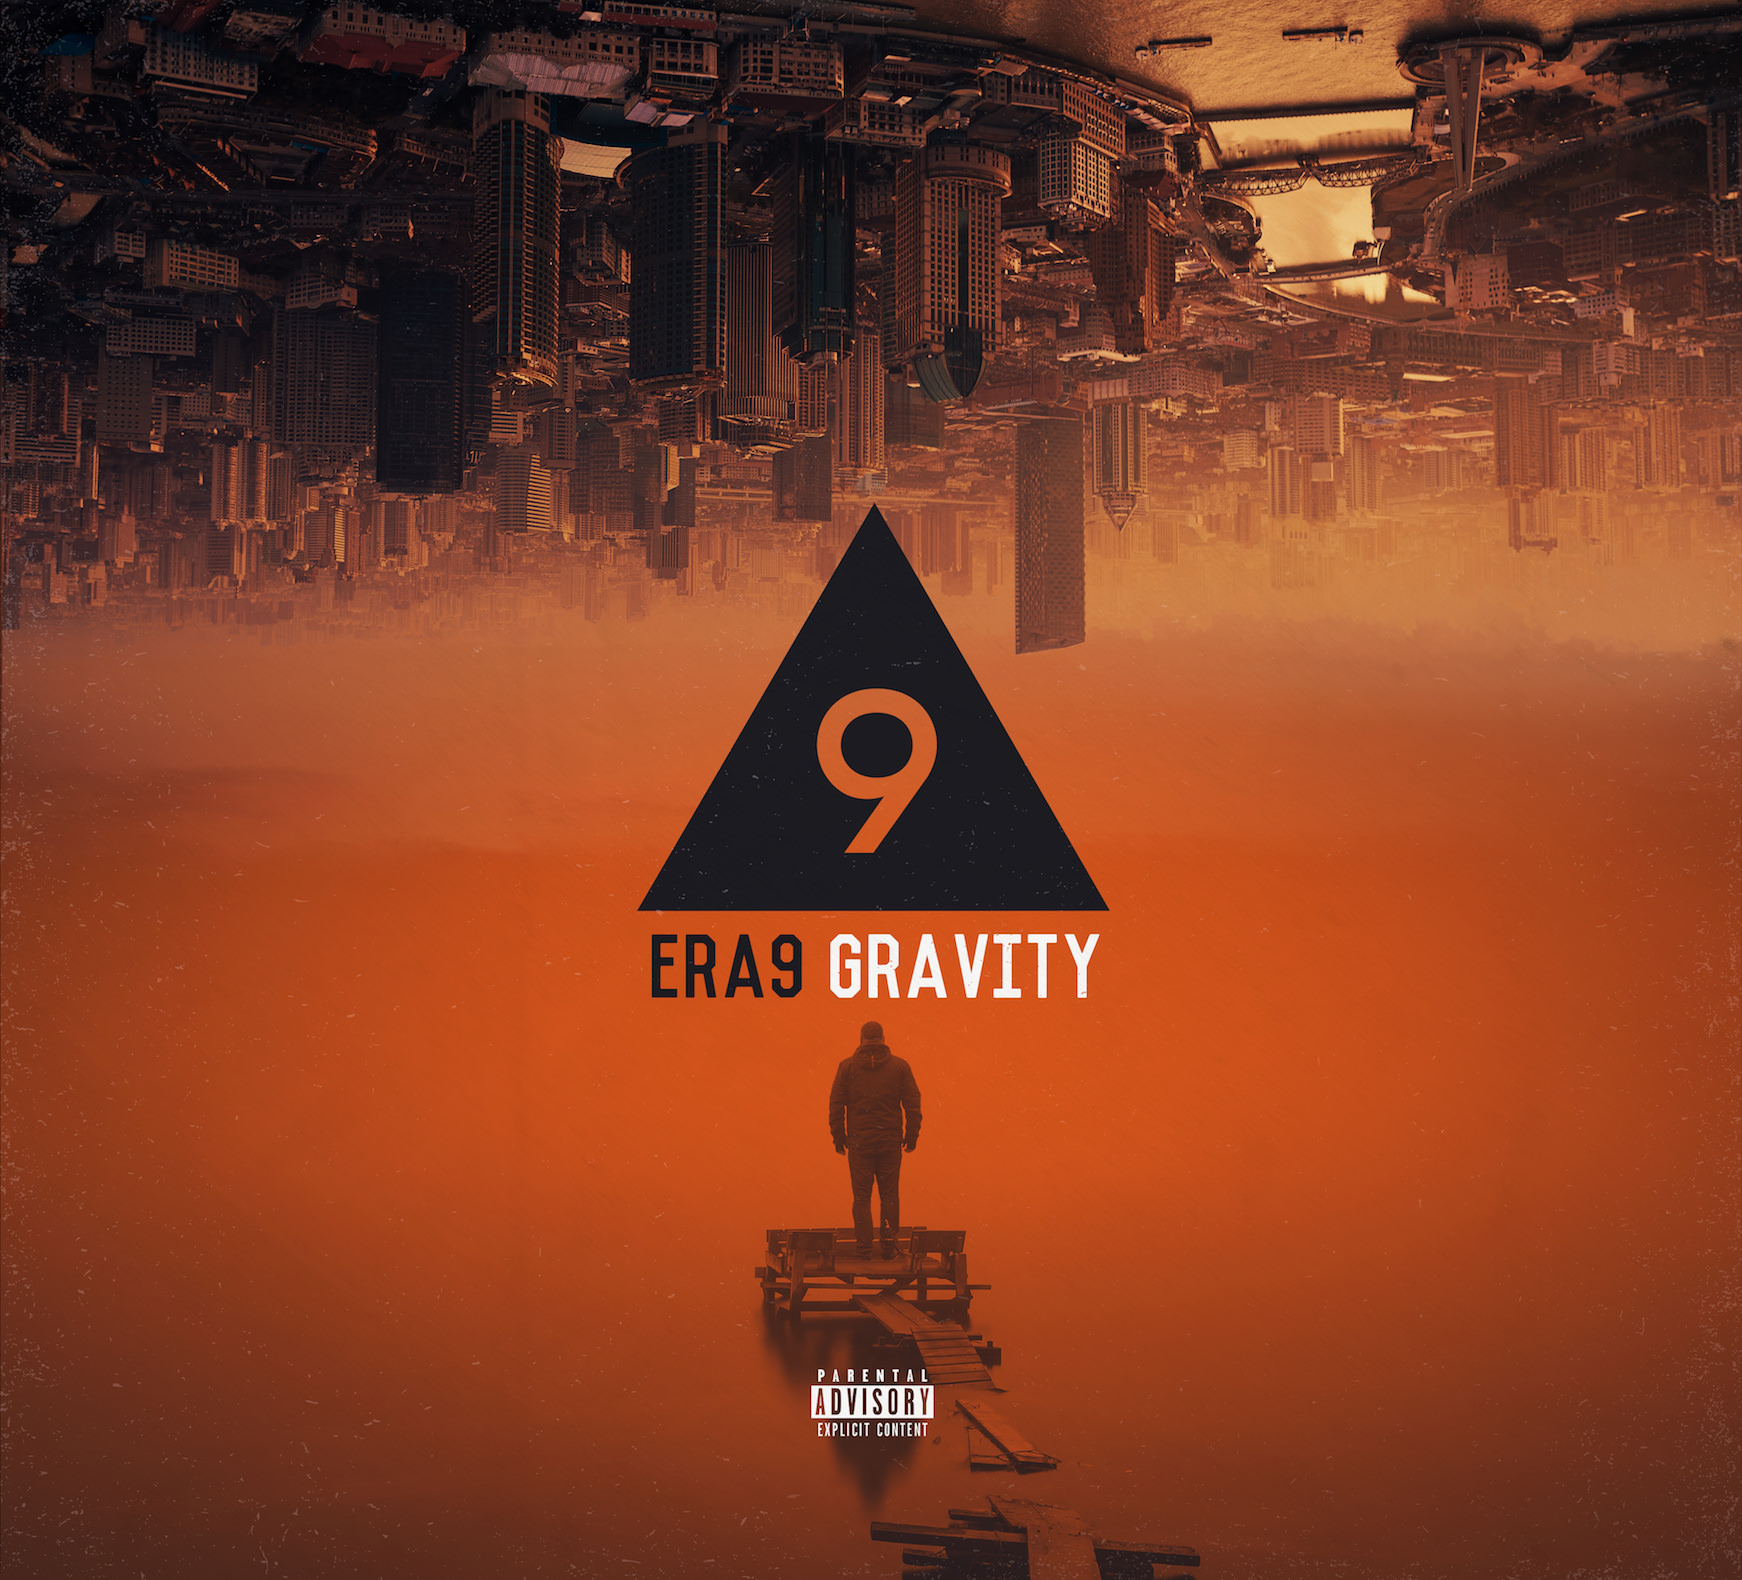 """Full Length Album - ERA 9's full length album 'Gravity' is a musical portrayal of the risks we took, ignoring genre formats and flipping the world of music as we knew it. We do not discriminate toward any musical genre, but feel an attraction towards uniting them and this mindset has given us the creative freedom for eclectic songwriting, inspiring us to think outside the box.This album depicts our emotions, struggles and life experiences, which are the tales that shaped our open minds. Hear """"Trap Rock"""" on record for the first, conceived through """"Gravity""""."""